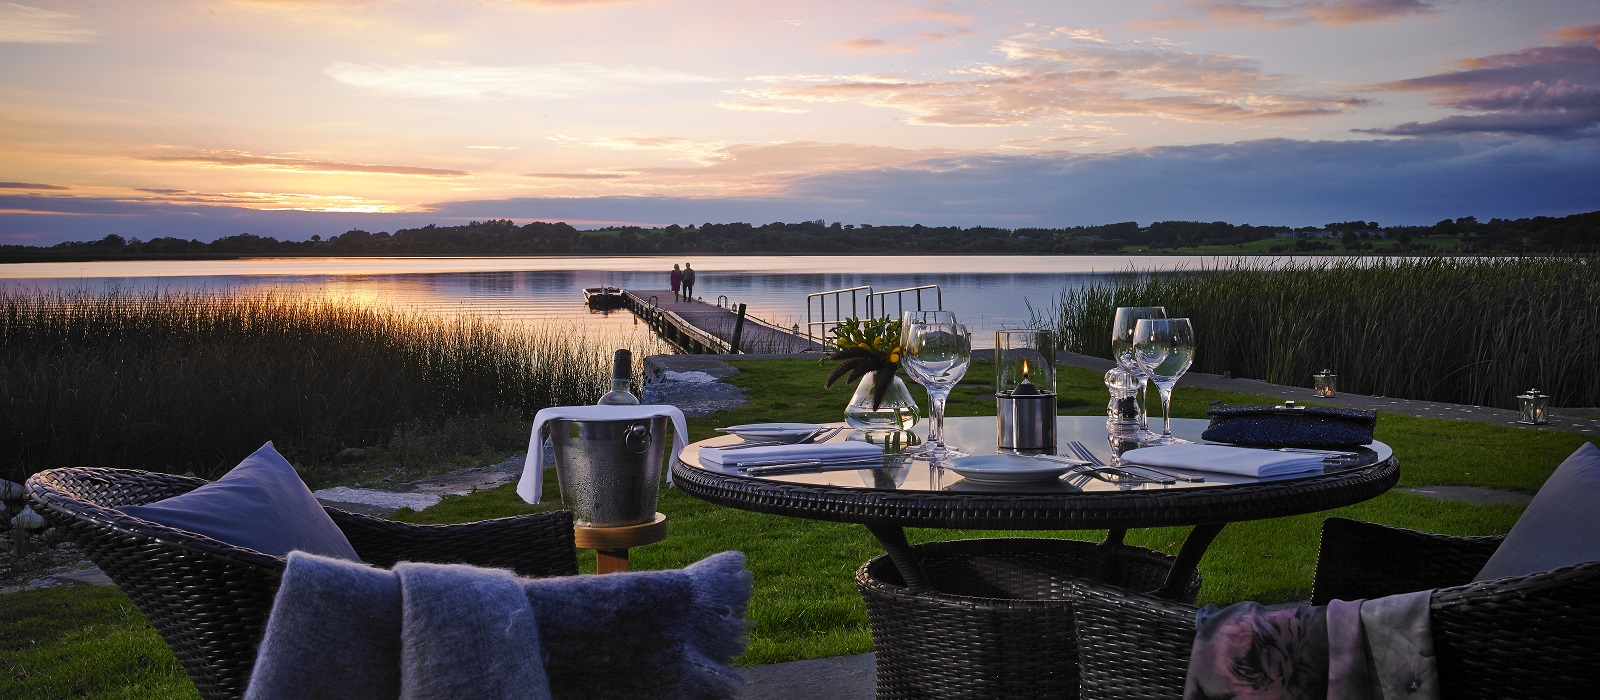 Wineport Lodge Hotel Just Outside Athlone Co Westmeath